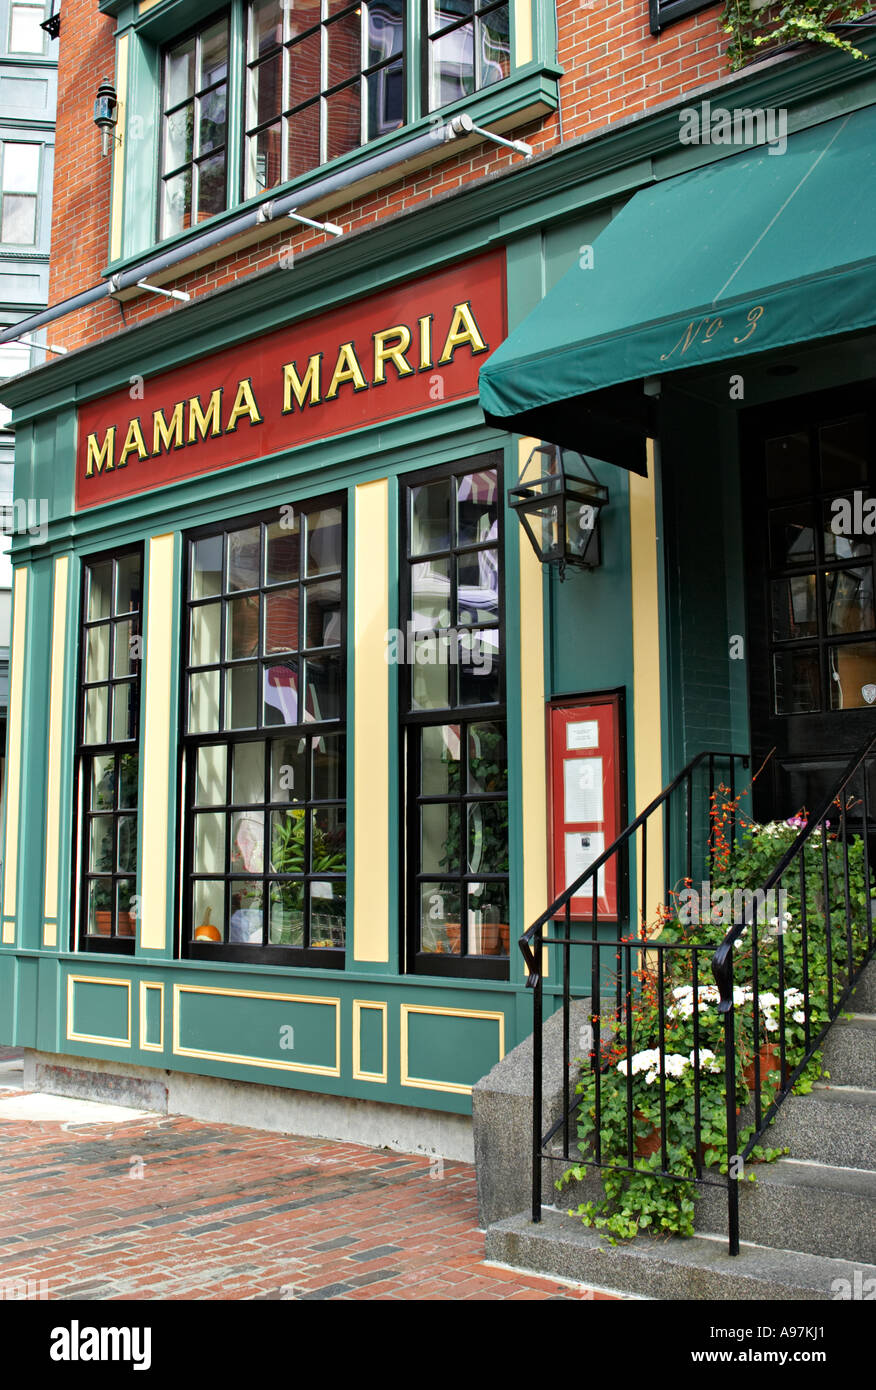 Italian restaurant exterior - Massachusetts Boston Exterior Of Mamma Maria Italian Restaurant In North End Neighborhood